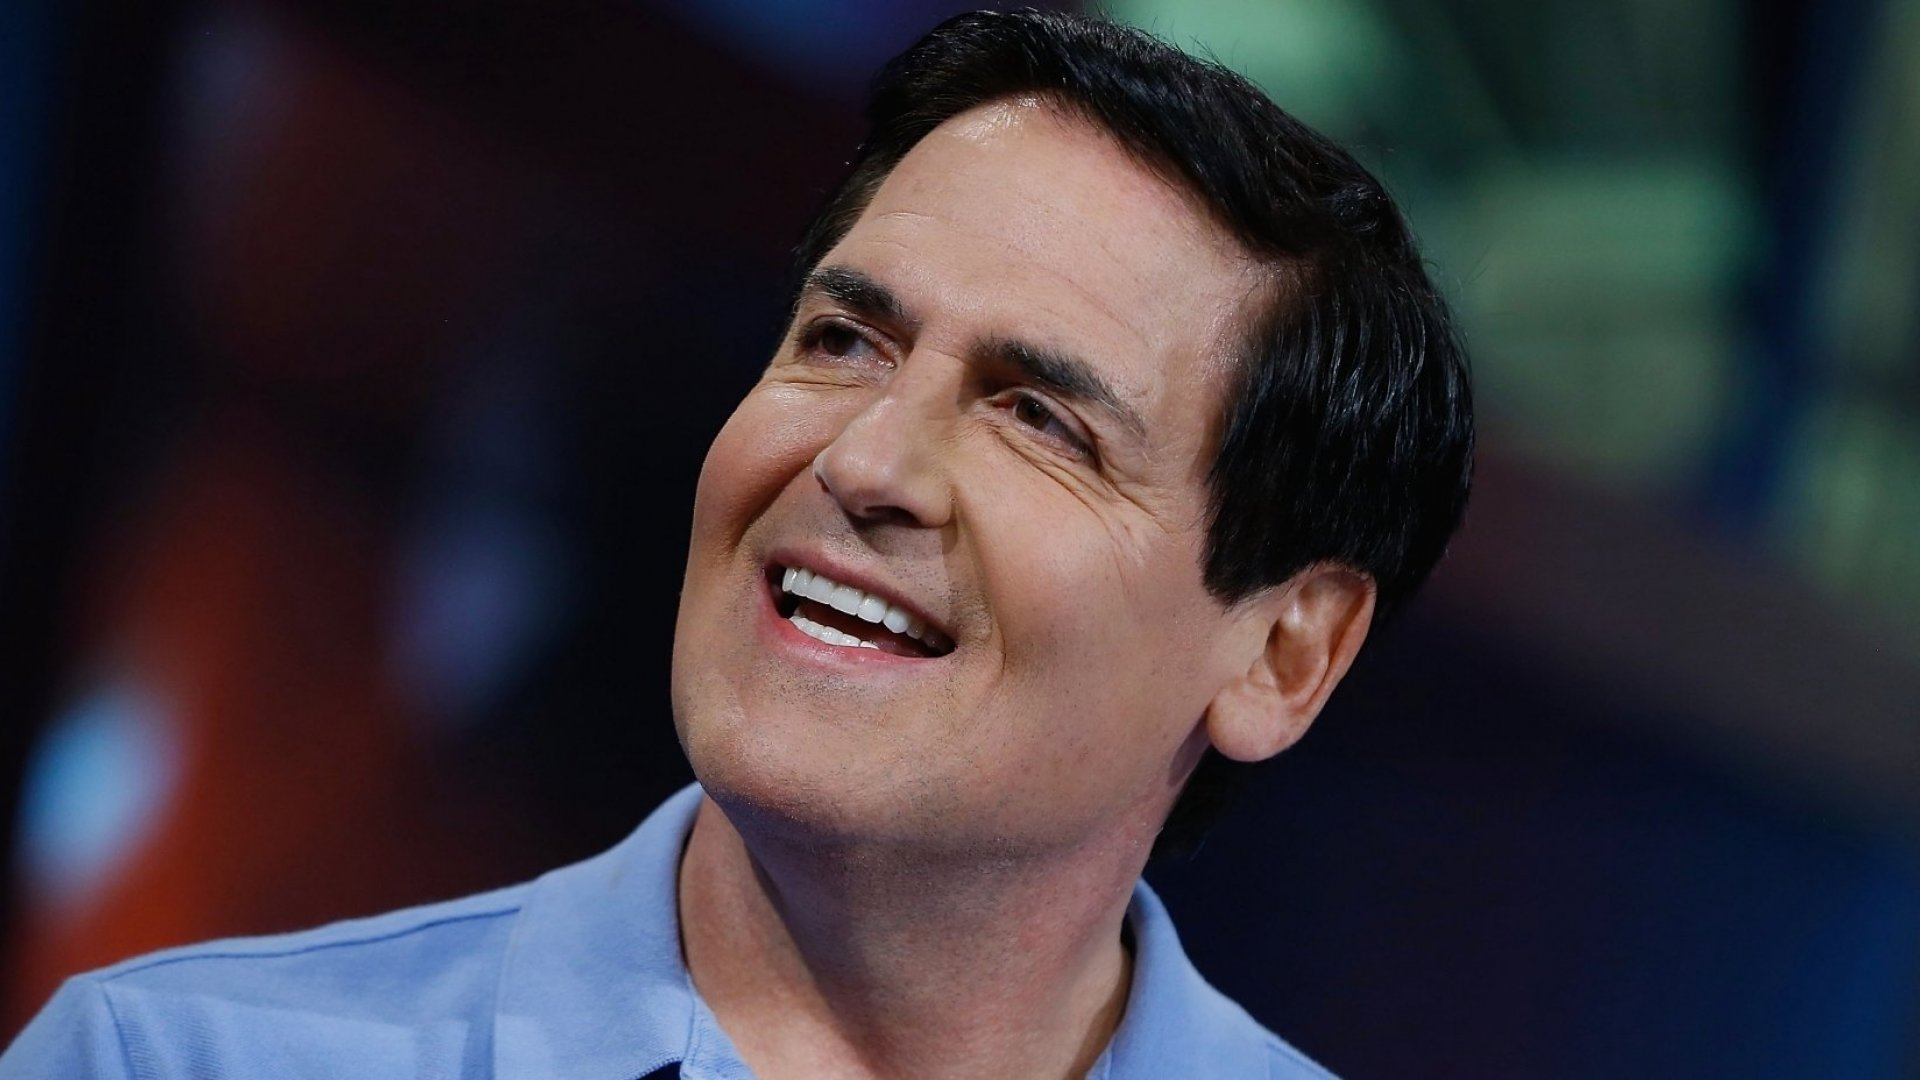 It Took Mark Cuban Just 5 Seconds to Show How Anyone Can Make a Great First Impression (and Be More Polite)